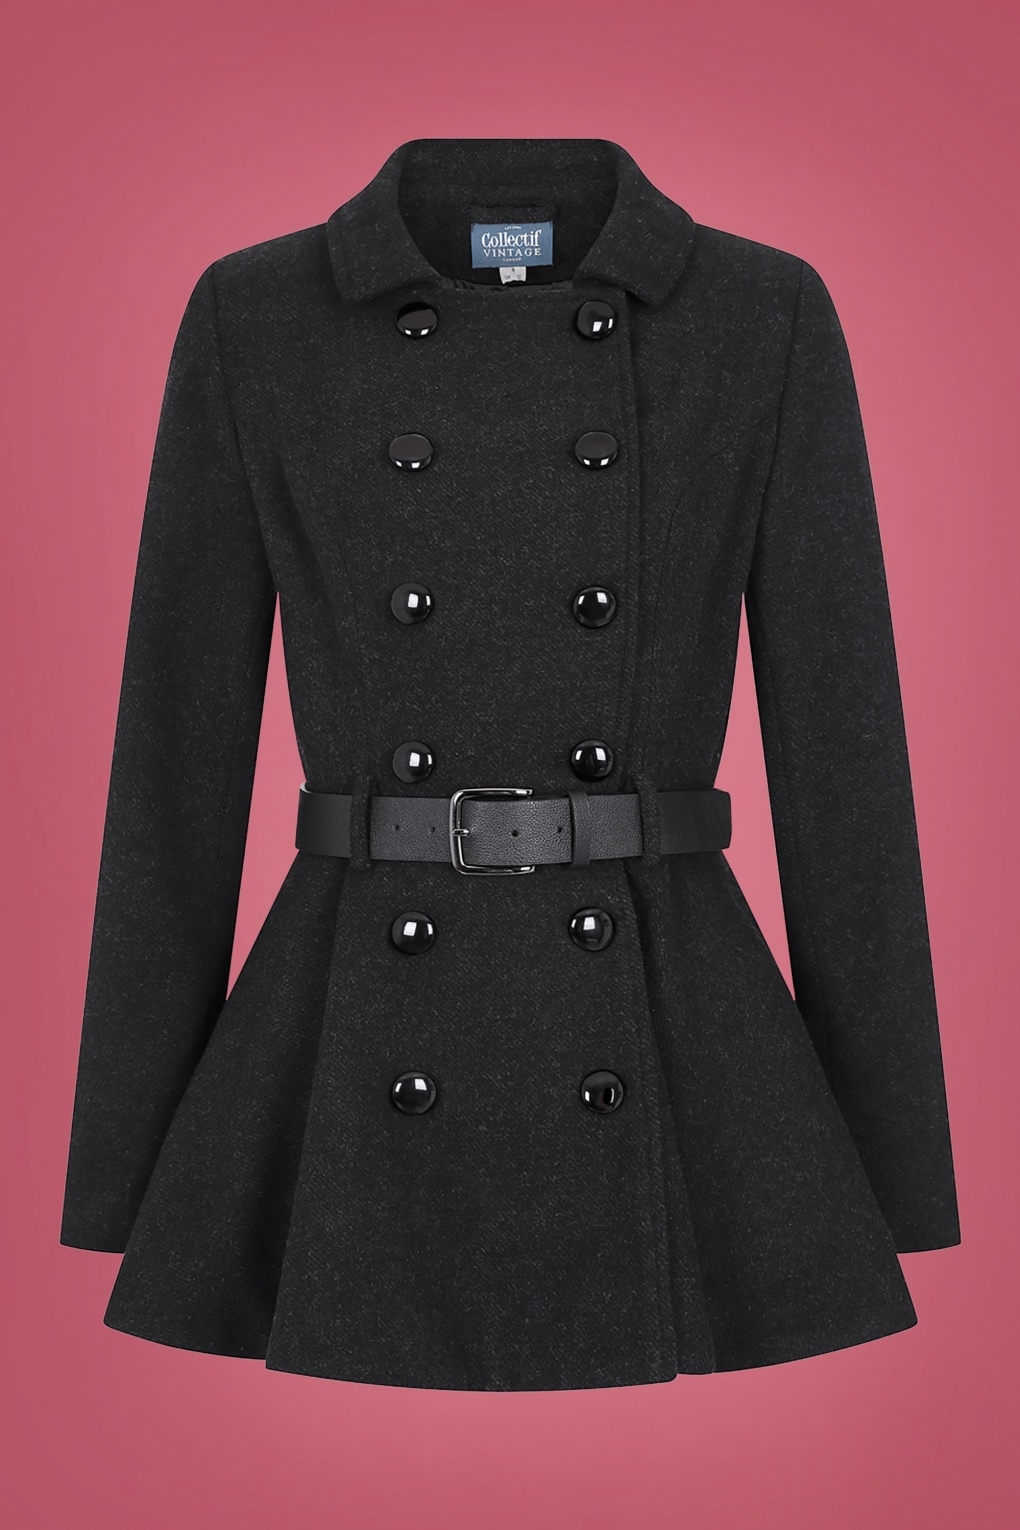 Women's 1940s Victory Suits and Utility Suits 40s Darienne Plain Peplum Jacket in Black £113.69 AT vintagedancer.com